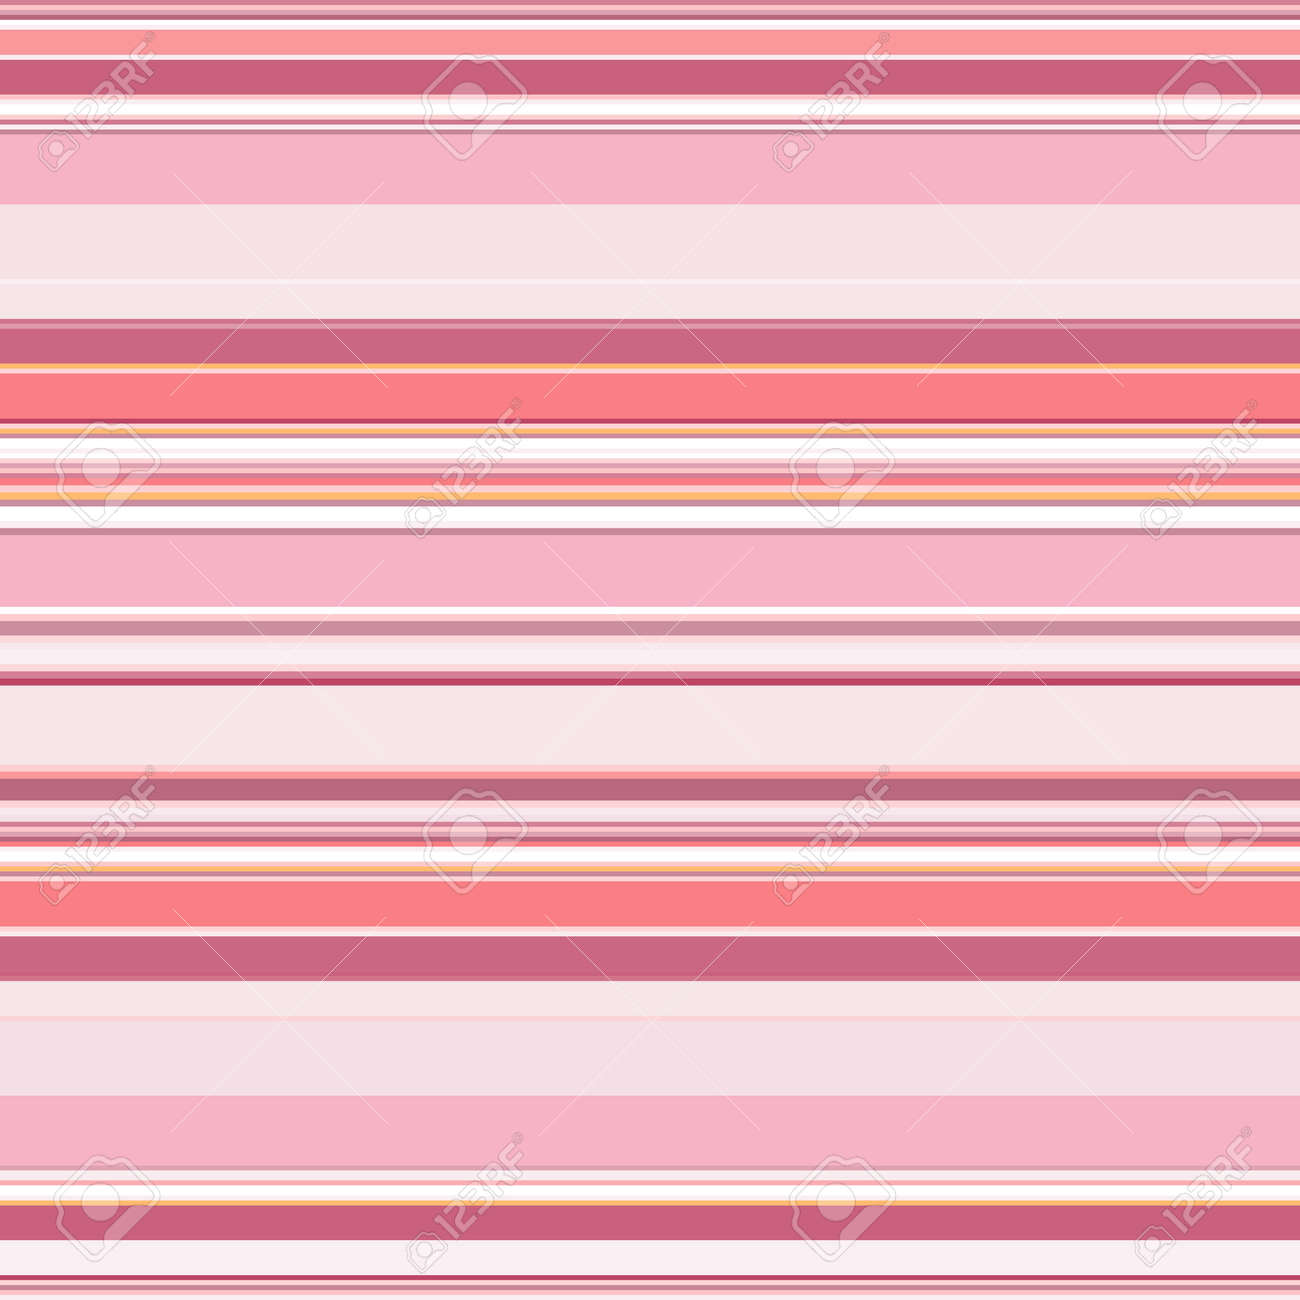 Striped seamless pattern. Horizontal lines and stripes. Vector geometric print in pink colors. Great for decorating fabrics, textiles, gift wrapping, printed matter, interiors, advertising. - 172076037